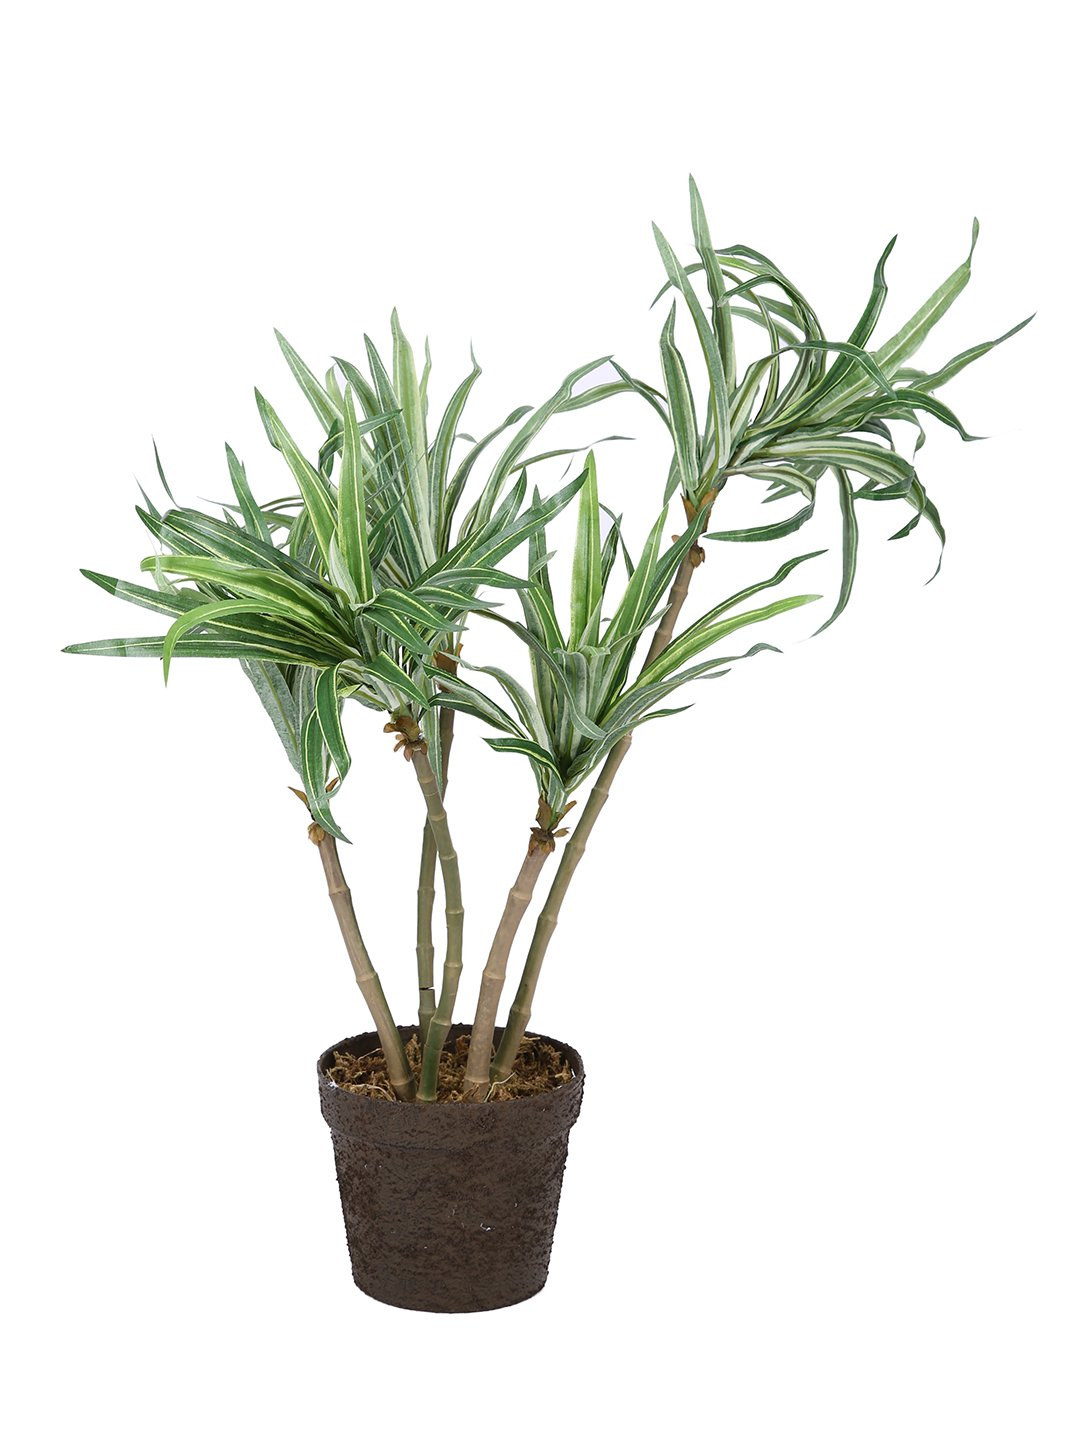 Artificial Draceana Plant With Pot ( L 48 cm X H 57 cm ) - Artificial Flowers & Plants - PolliNation